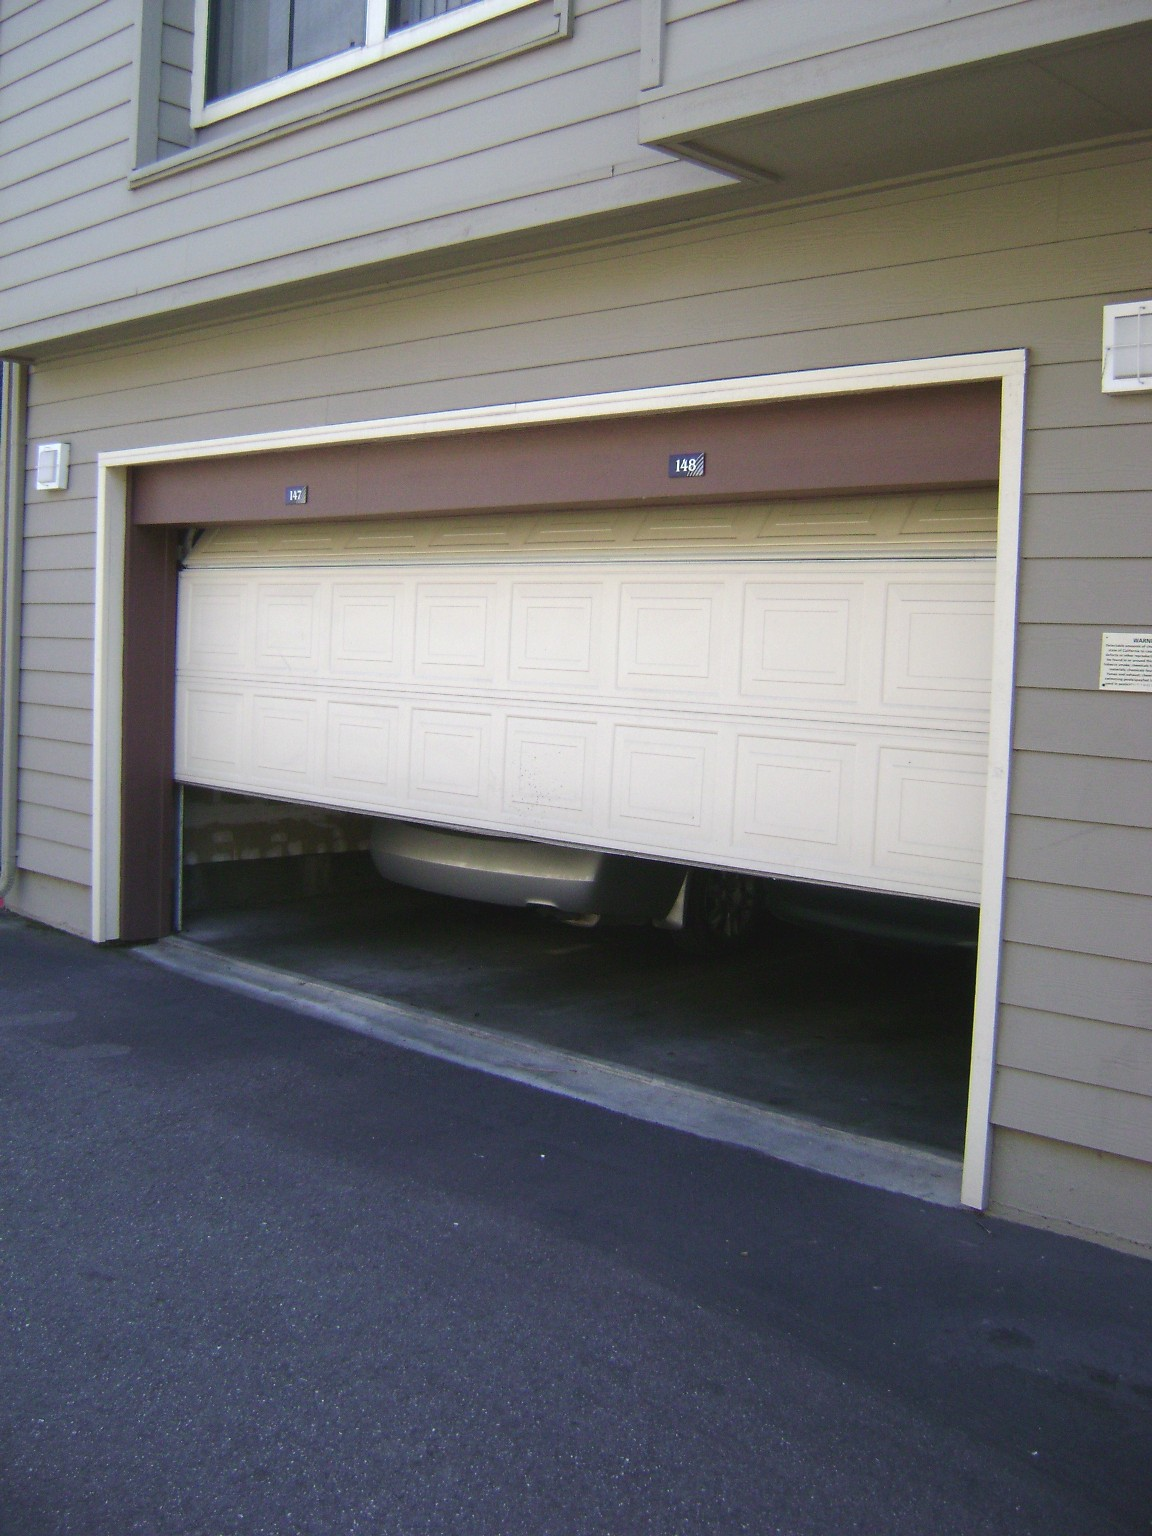 Filegarage door sliding upg wikimedia commons filegarage door sliding upg rubansaba